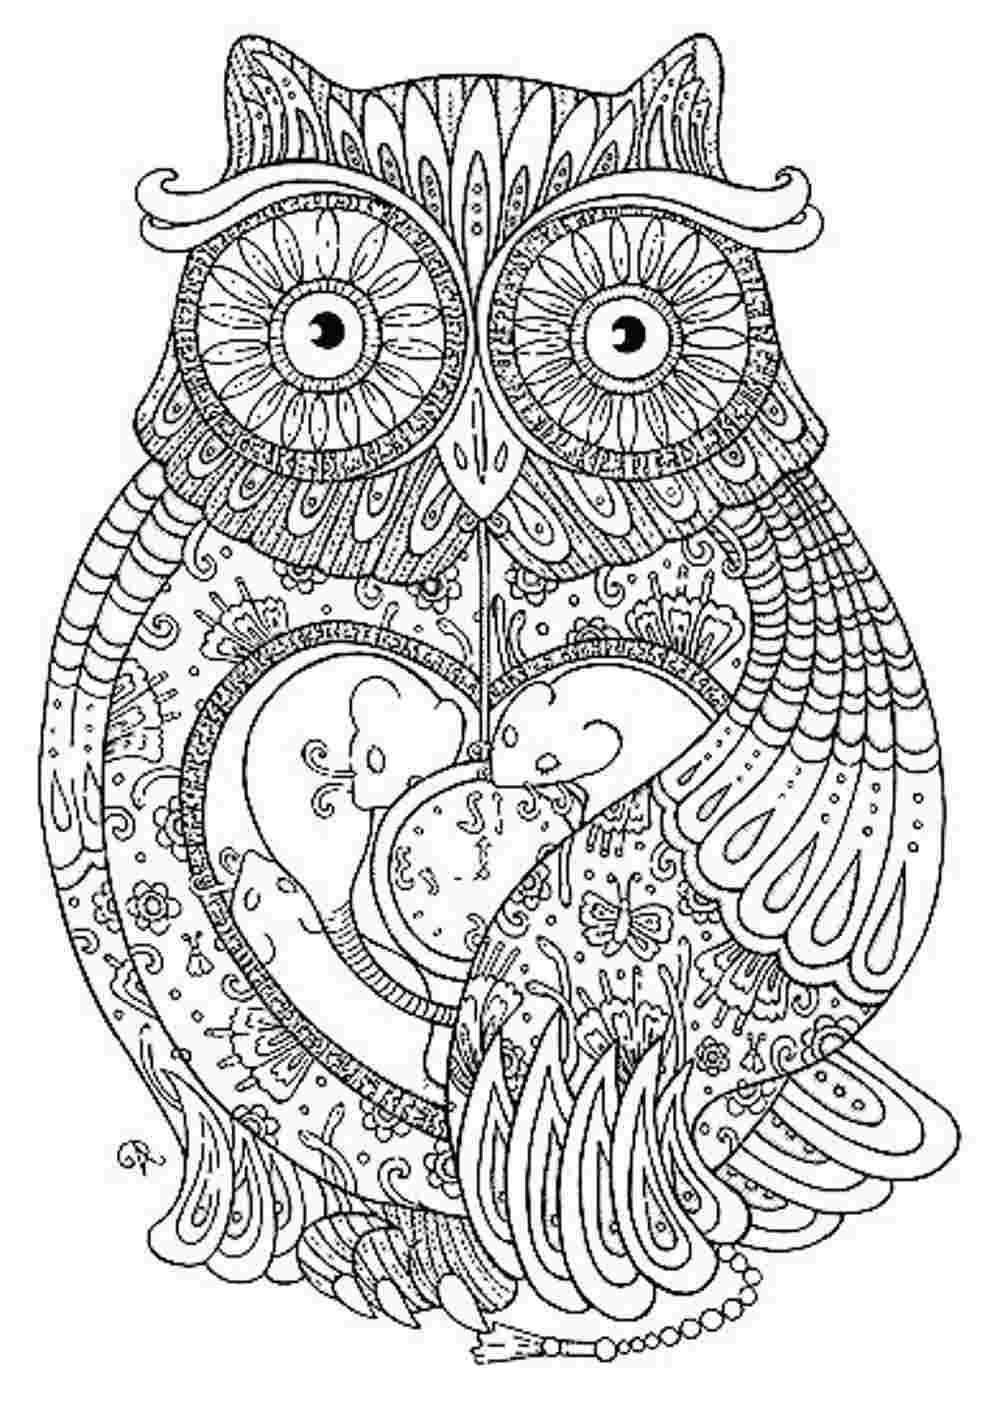 coloring pages for adults printable butterfly coloring pages for adults best coloring pages adults coloring printable for pages